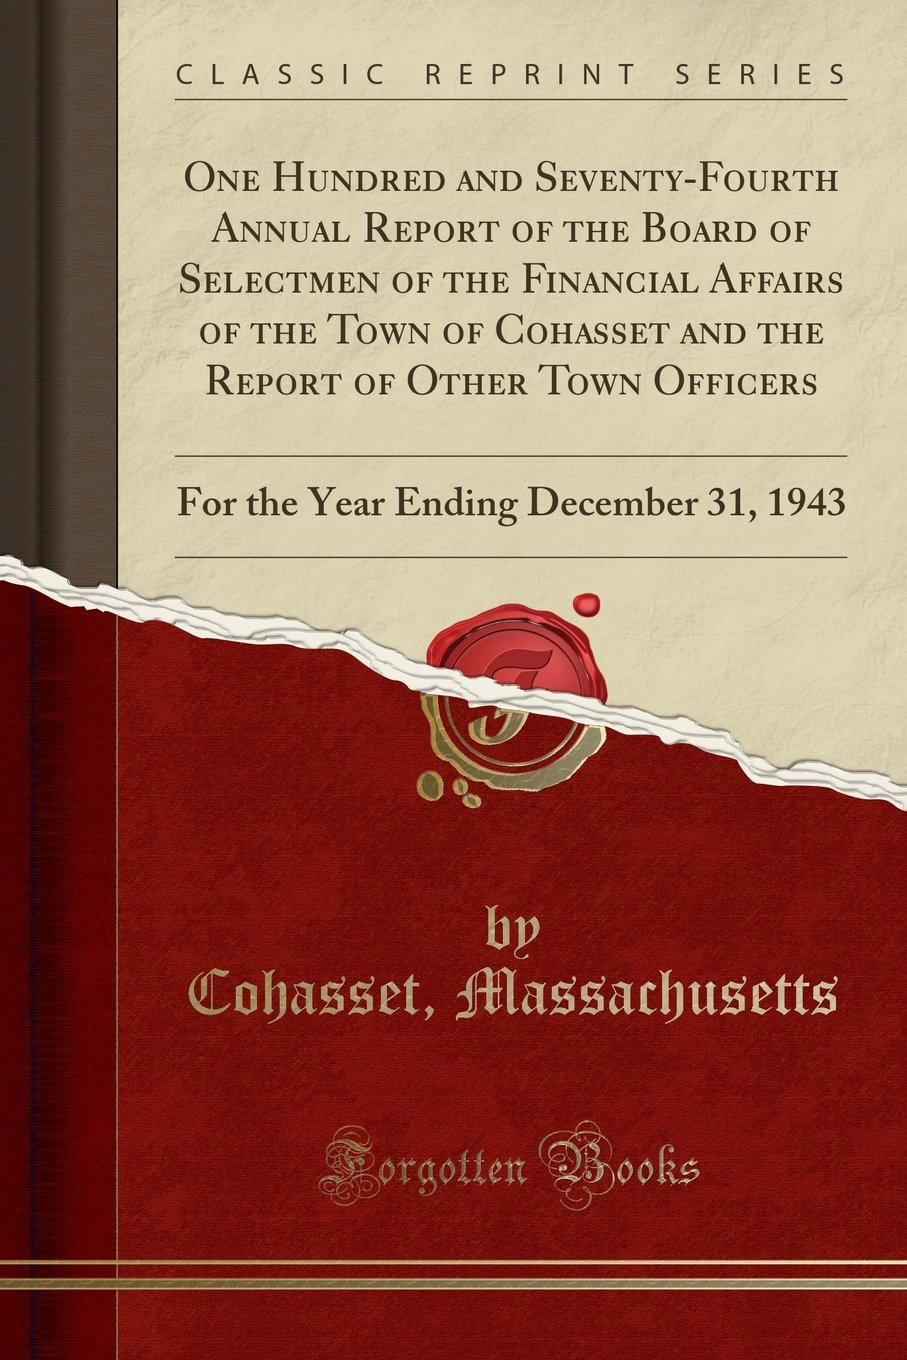 Read Online One Hundred and Seventy-Fourth Annual Report of the Board of Selectmen of the Financial Affairs of the Town of Cohasset and the Report of Other Town ... Ending December 31, 1943 (Classic Reprint) ebook